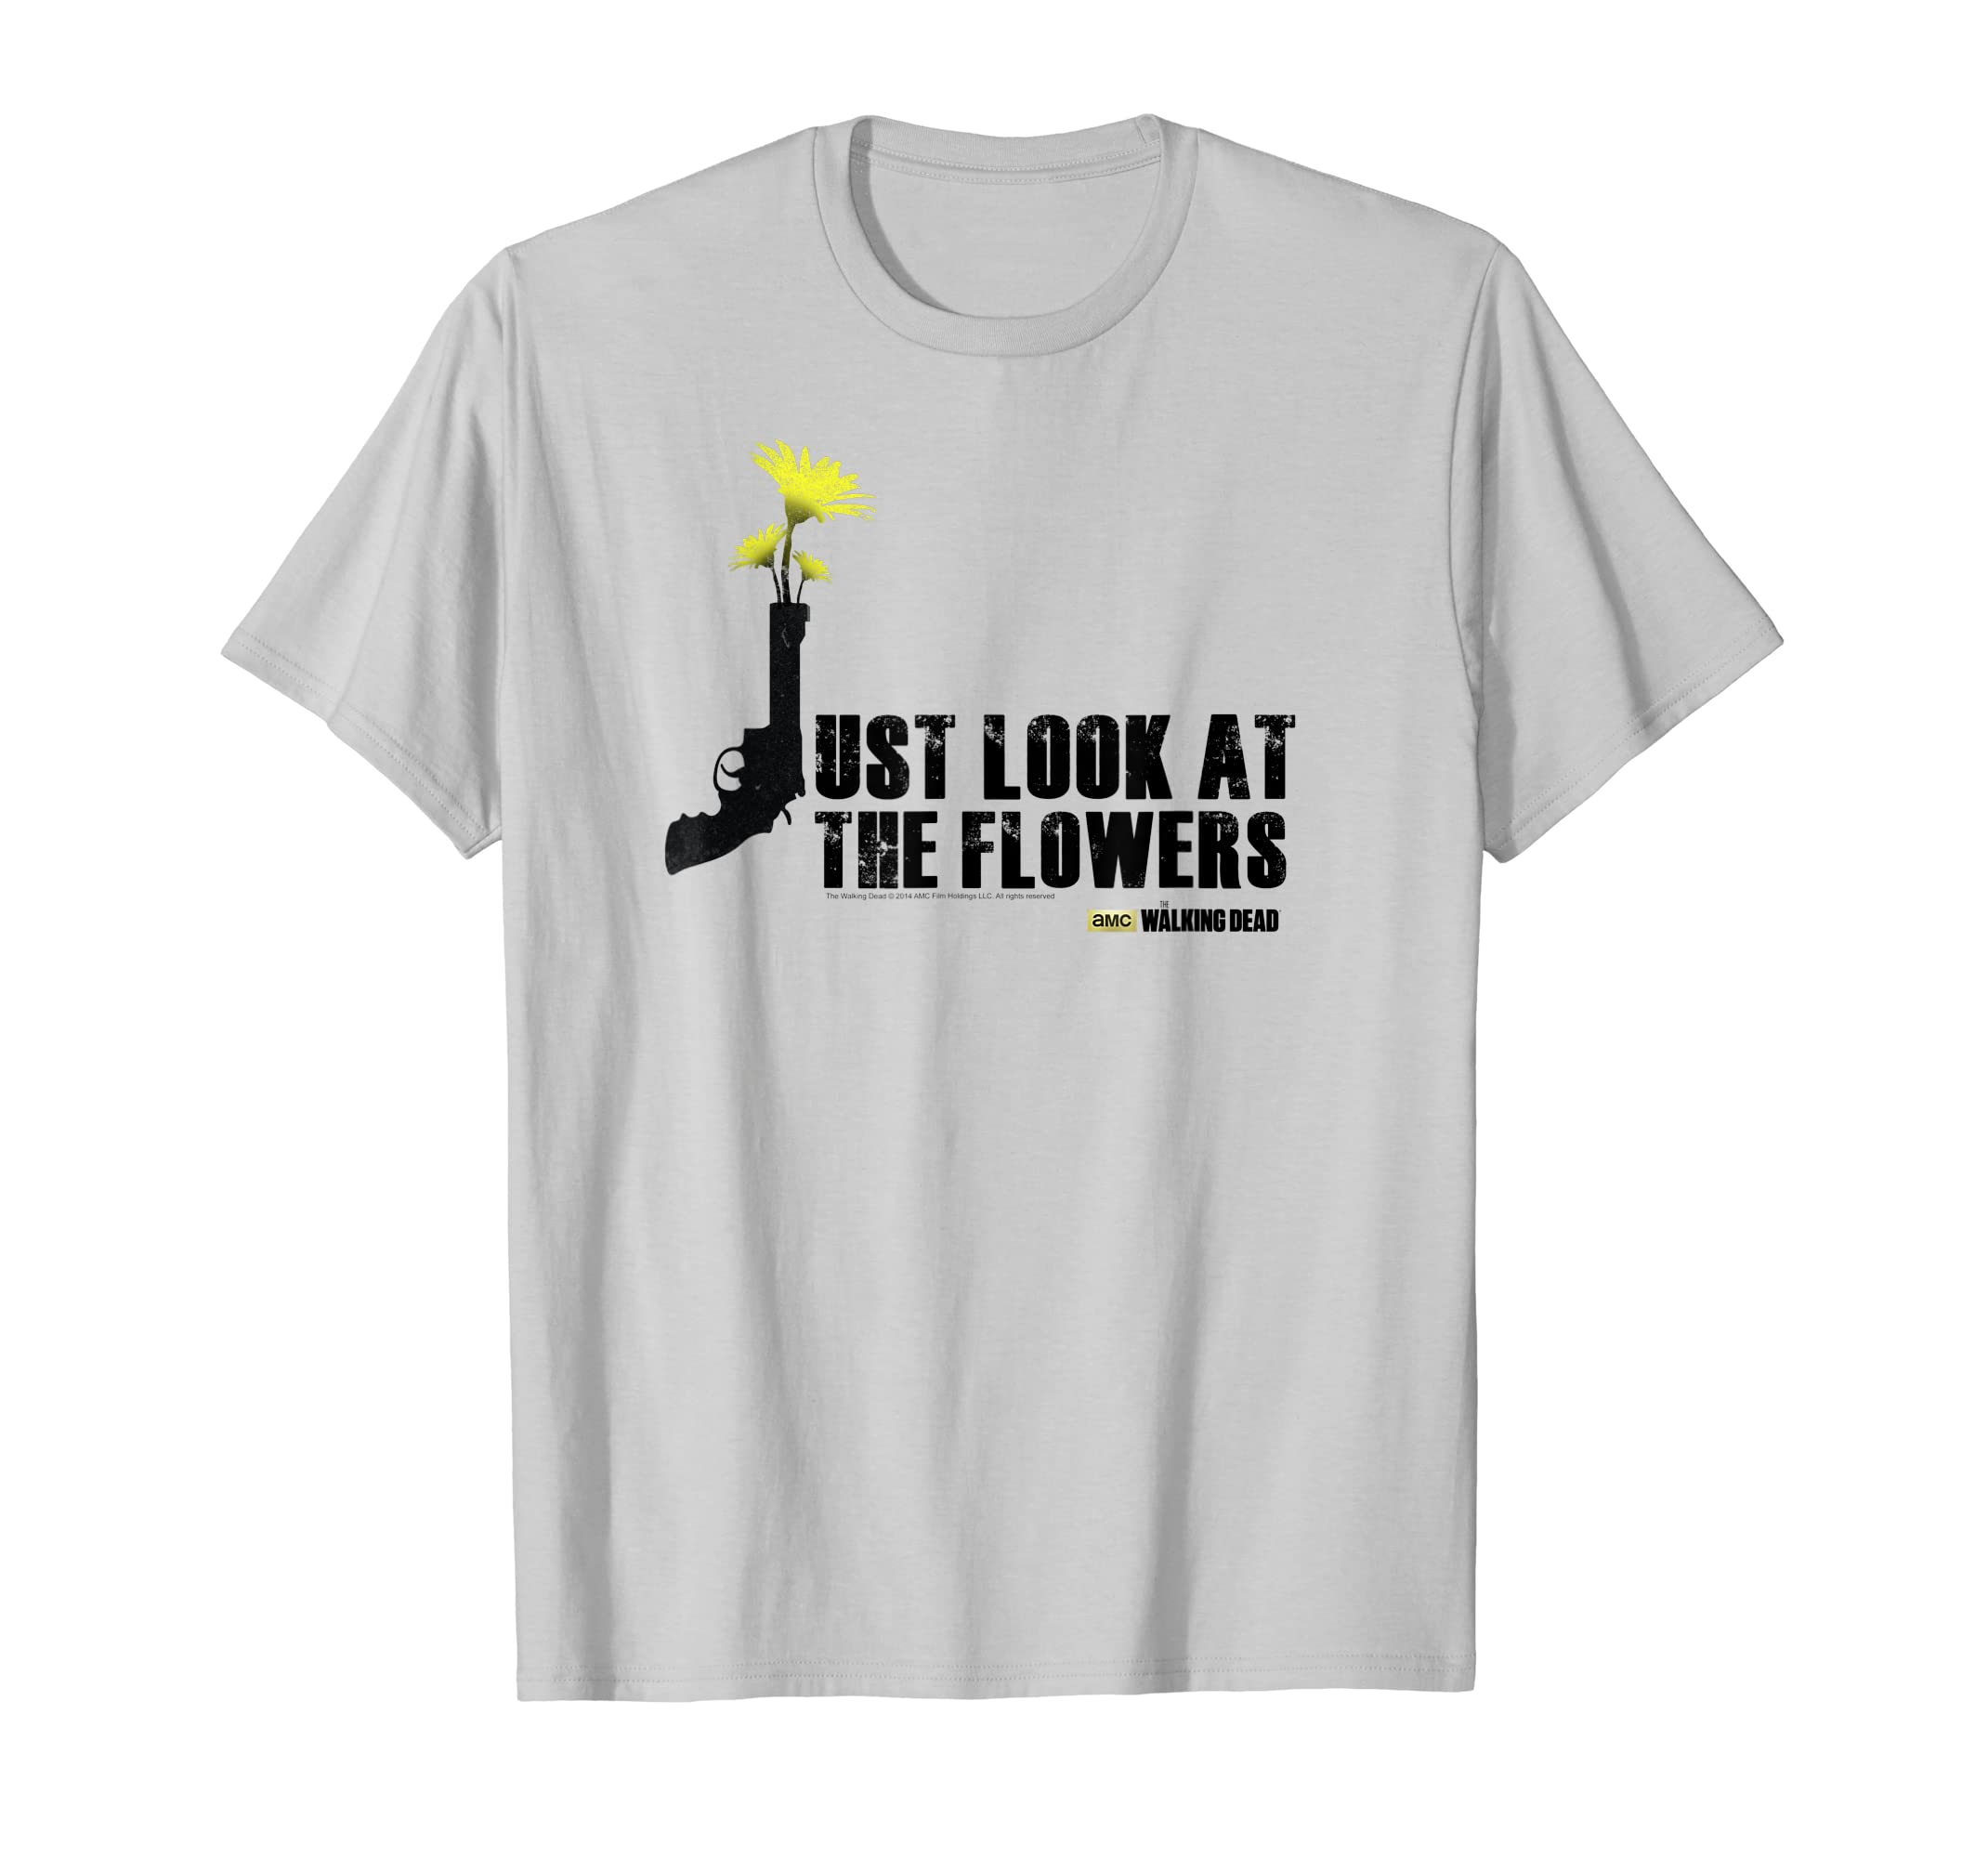 bf6a0f95e Amazon.com: The Walking Dead Just Look At The Flowers T-Shirt: Clothing